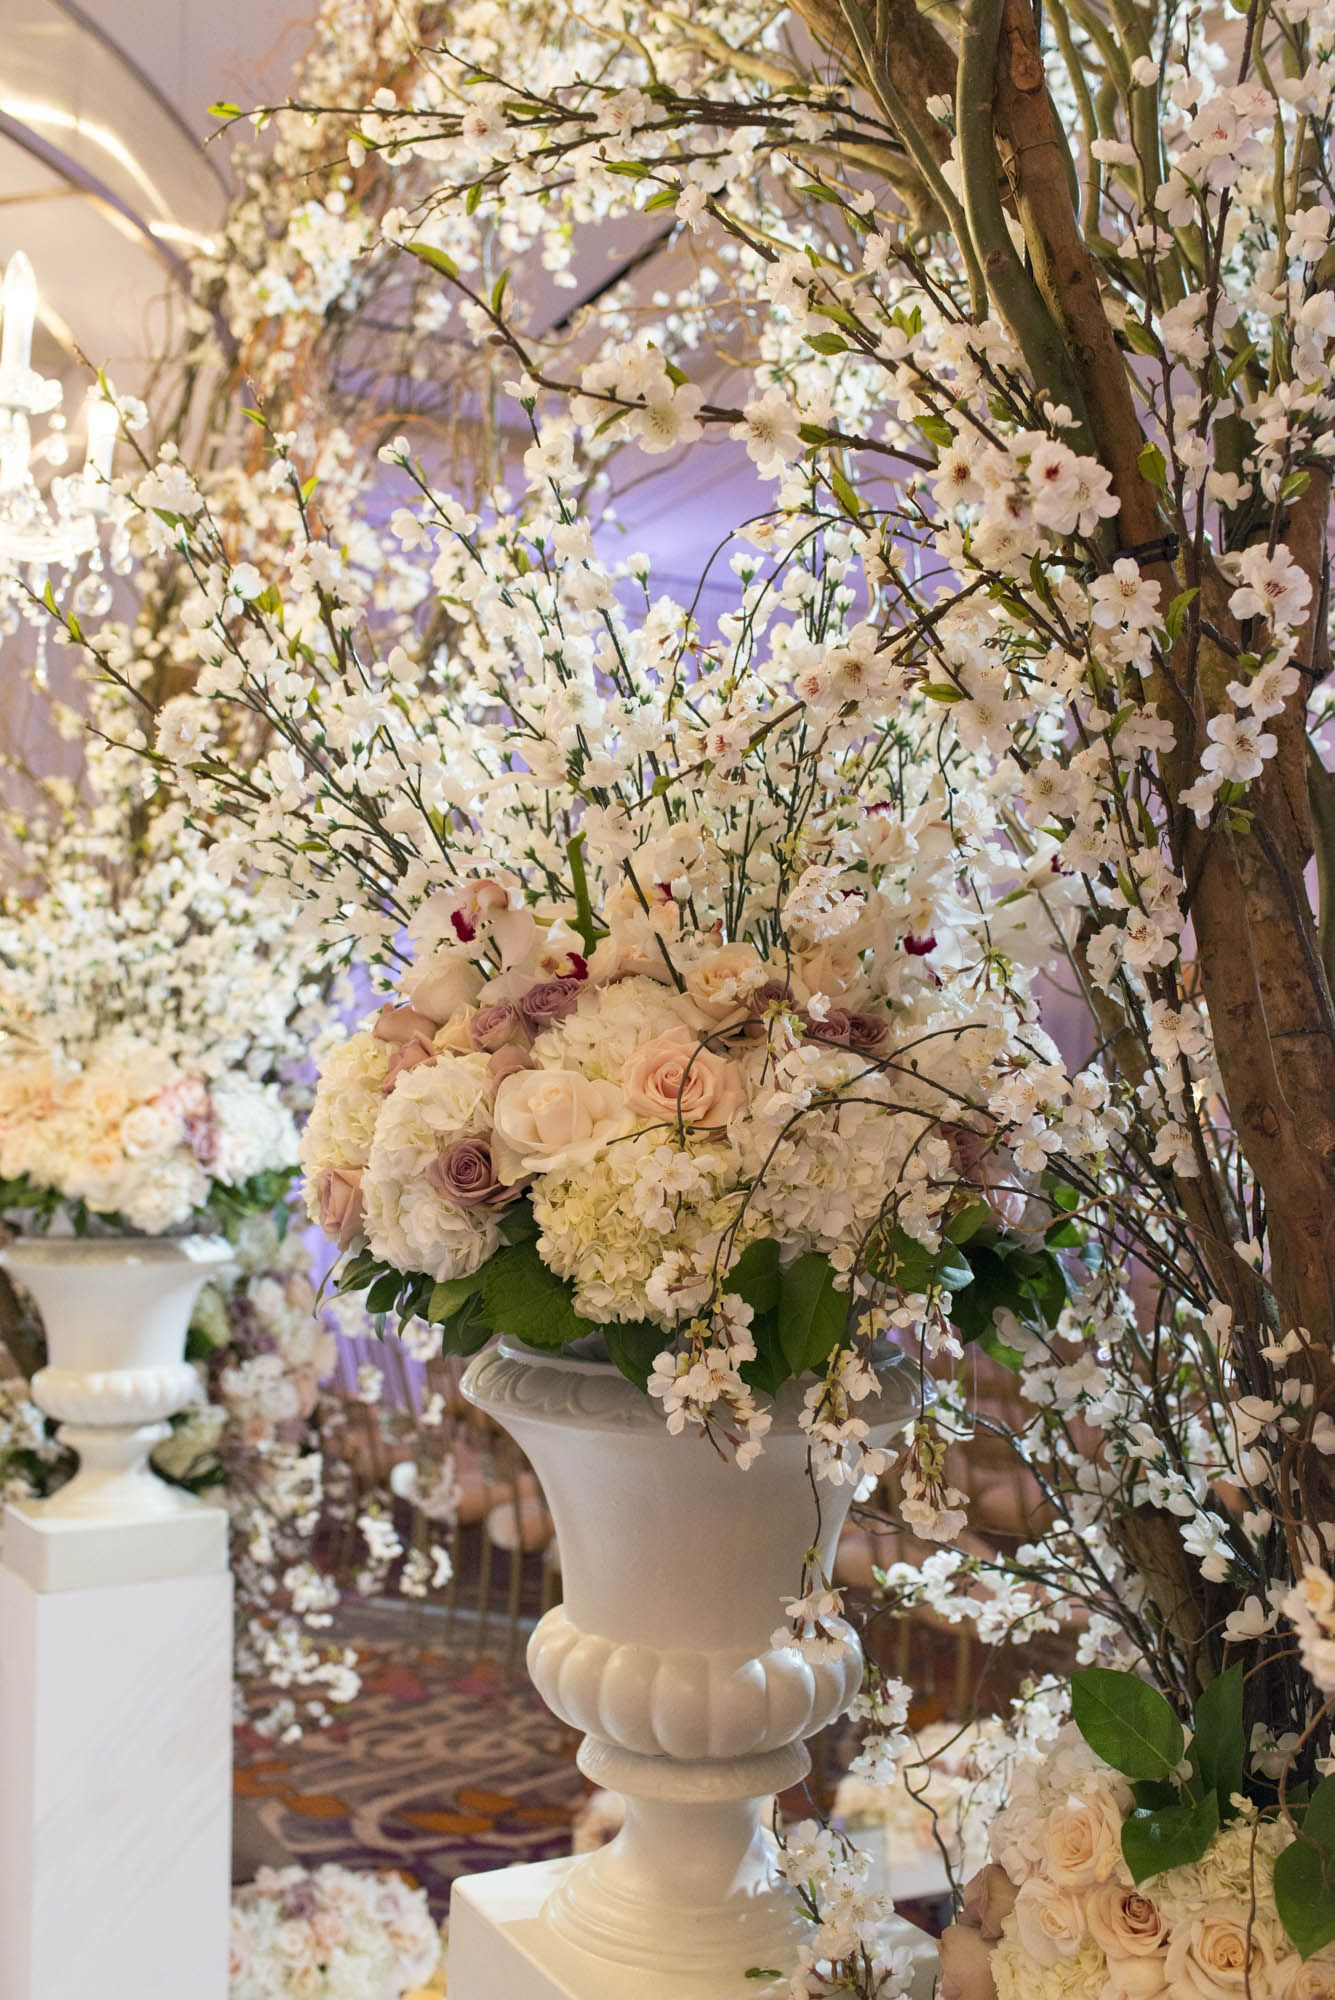 Aisle Markers in Tall White Urns